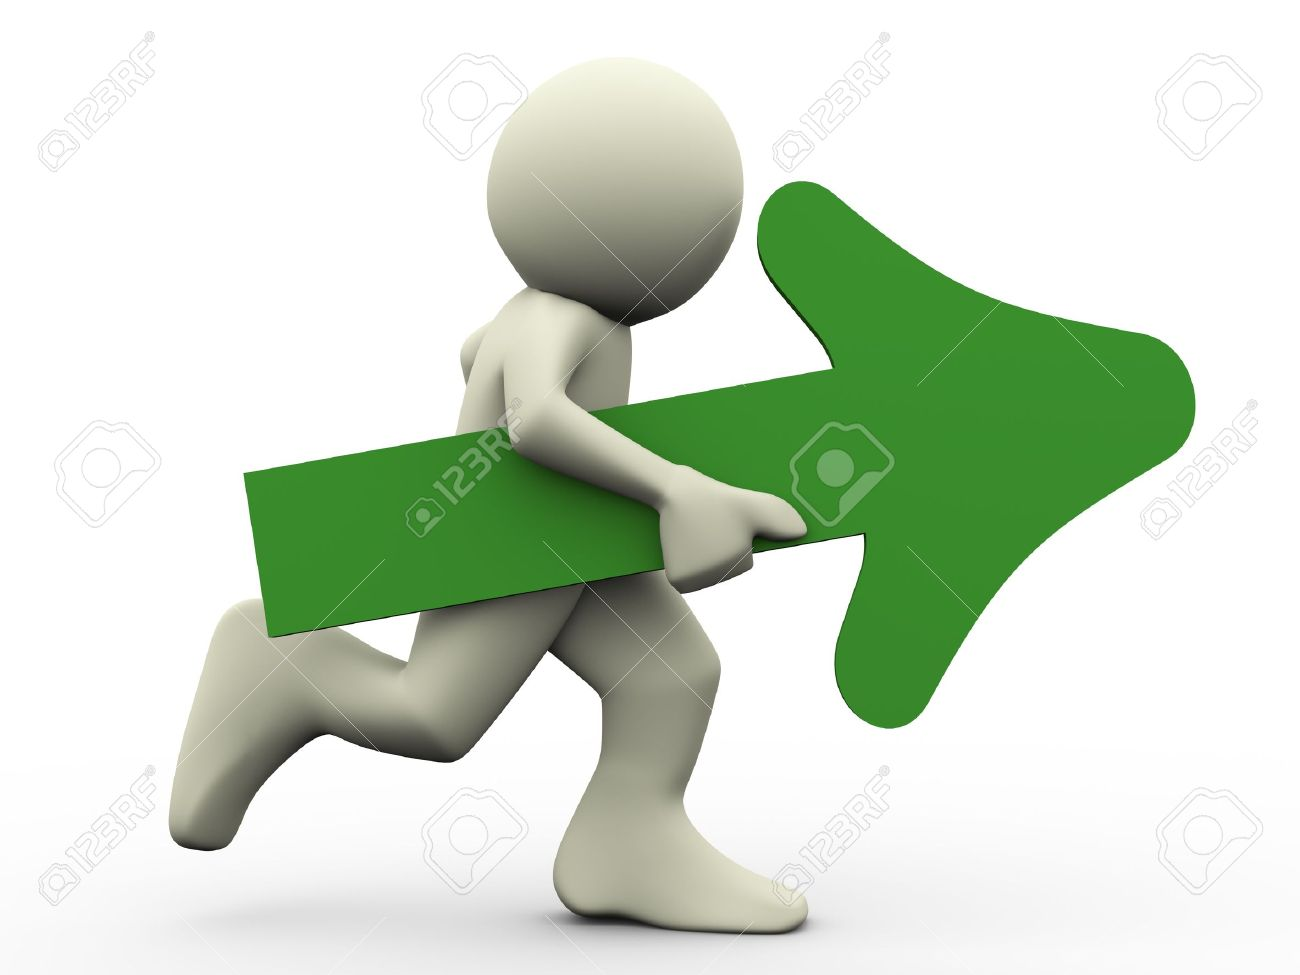 Men holding the word party concept 3d illustration stock photo - Action Plan 3d Render Of Running Man Holding Green Arrow In His Hand 3d Illustration